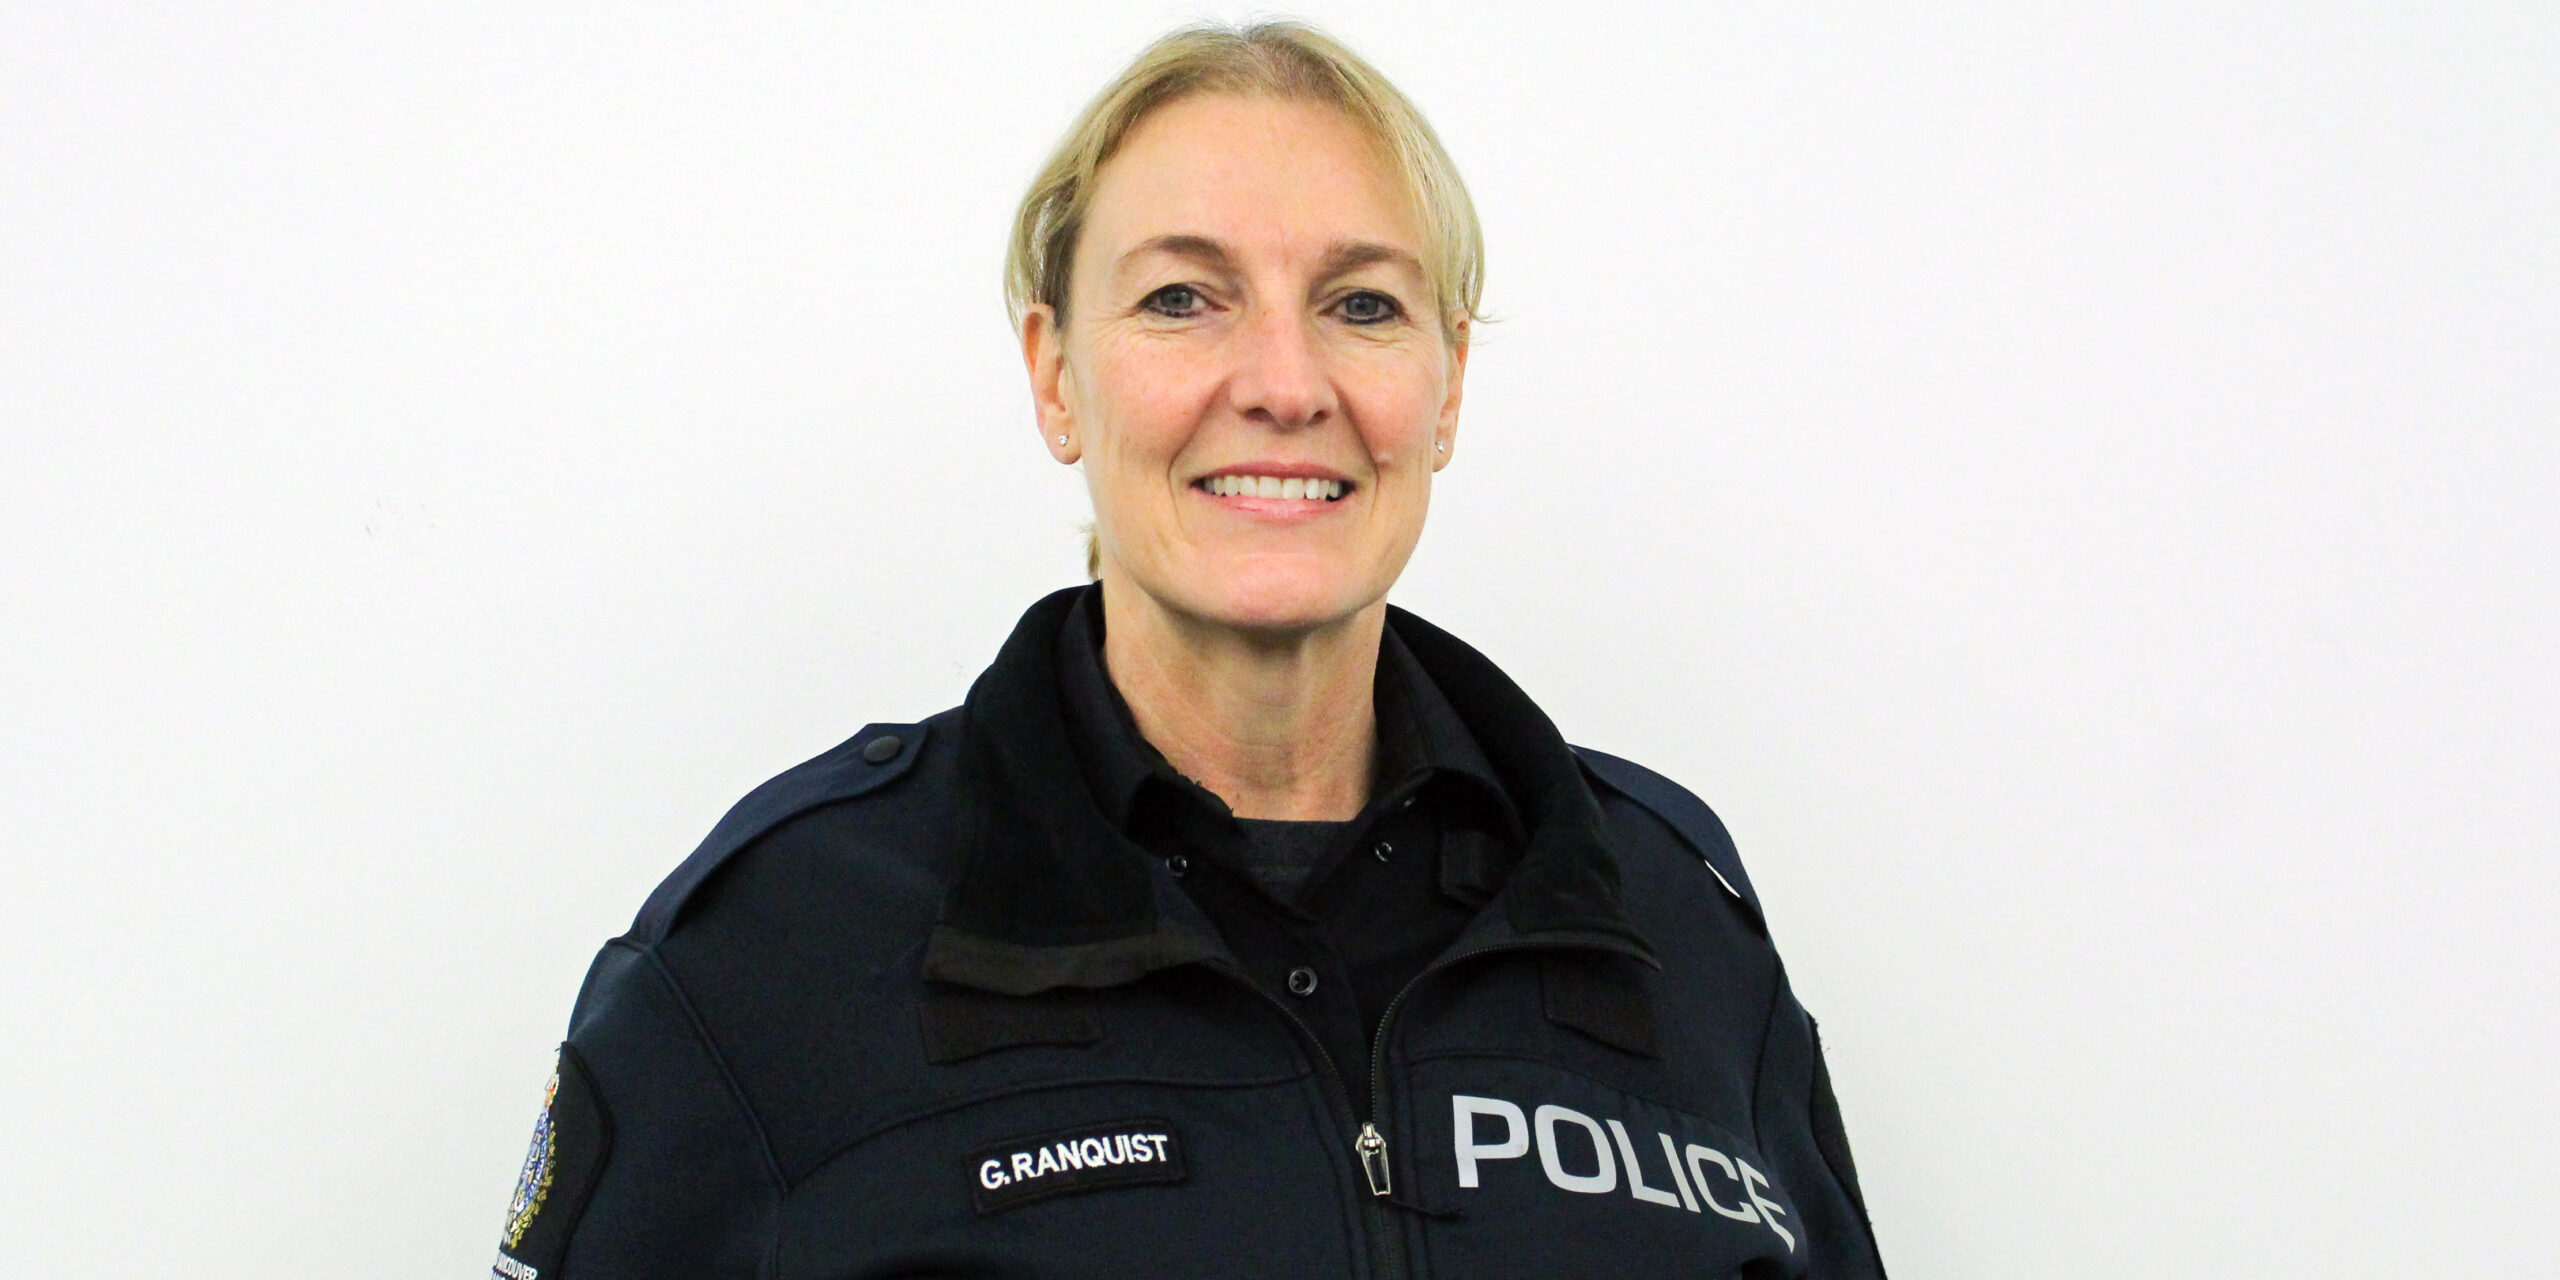 Photo of Constable Gwen Ranquist